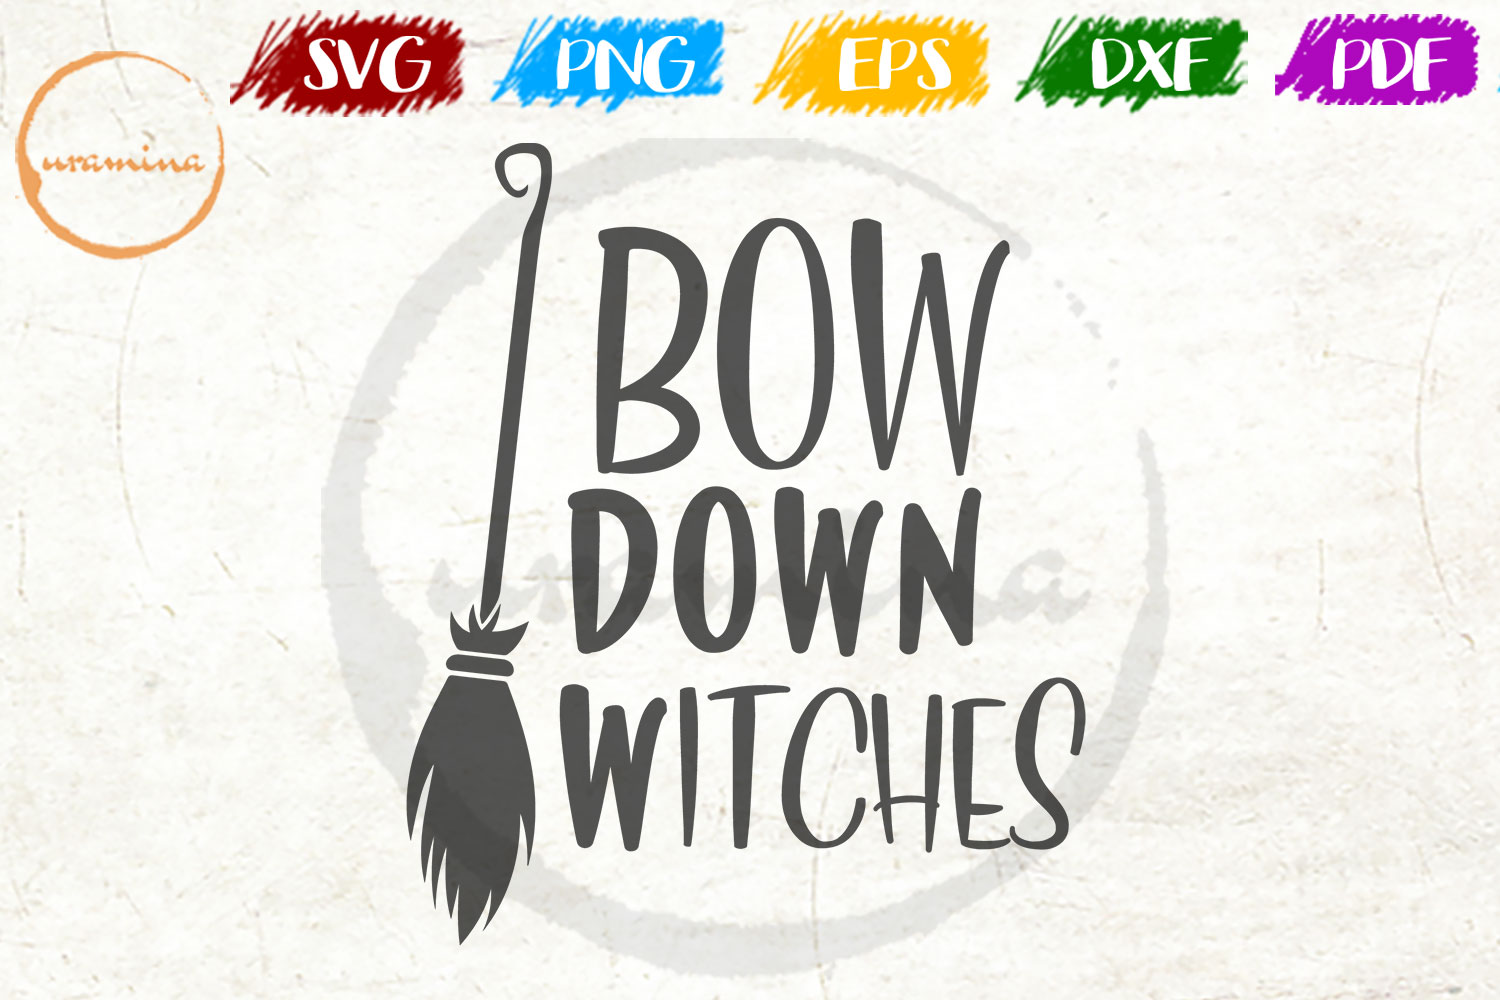 Download Free Bow Down Witches Graphic By Uramina Creative Fabrica for Cricut Explore, Silhouette and other cutting machines.